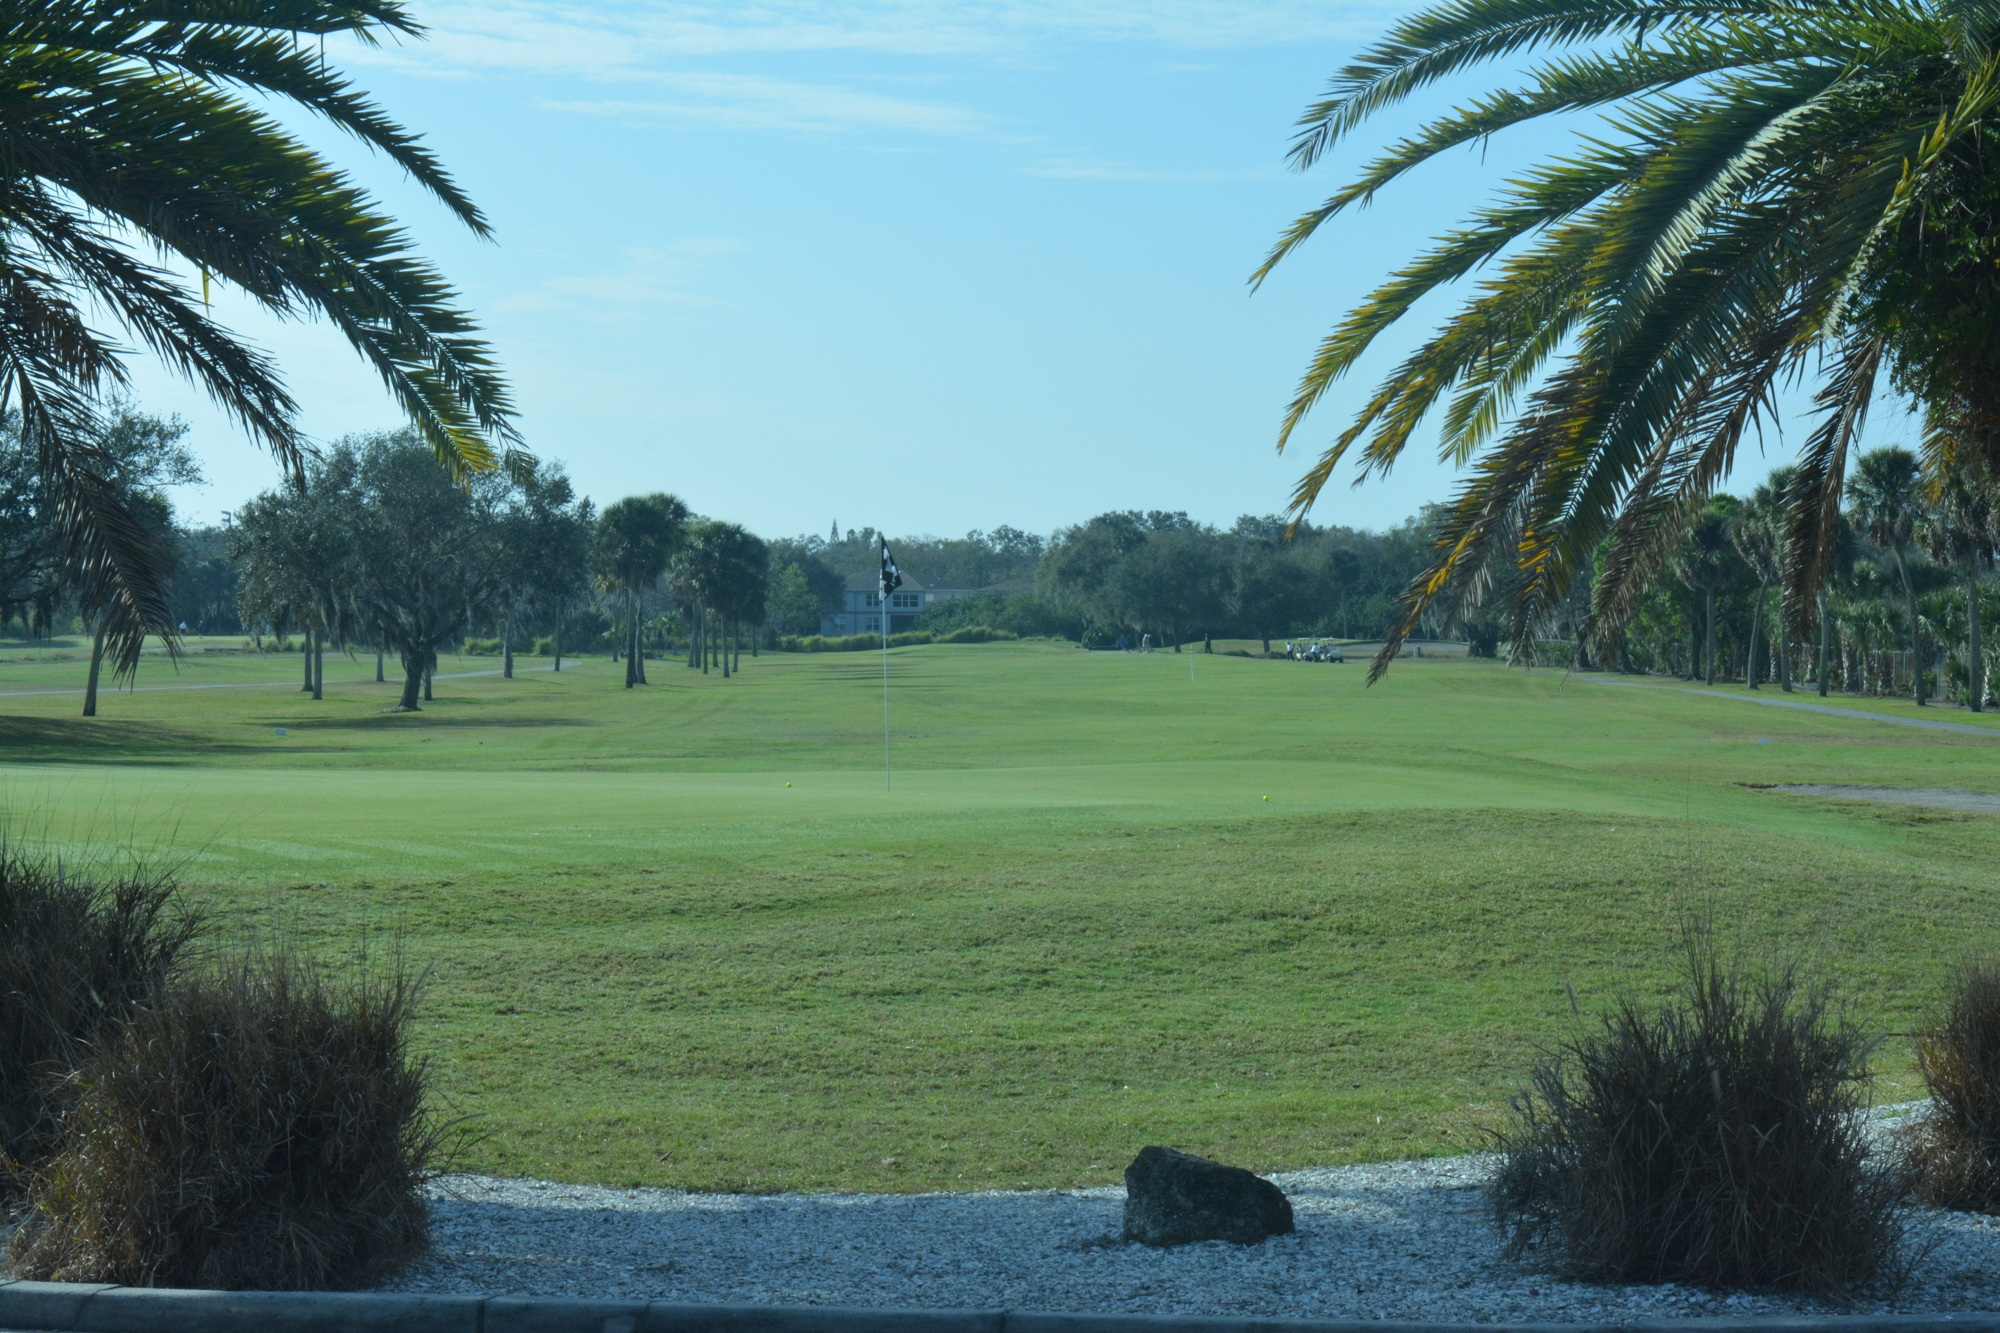 Richard Mandell  is finalizing a master plan for the entirety of the city-owned golf facility. PHOTOGRAPH COURTESY OF YOUROBERSERVER.COM